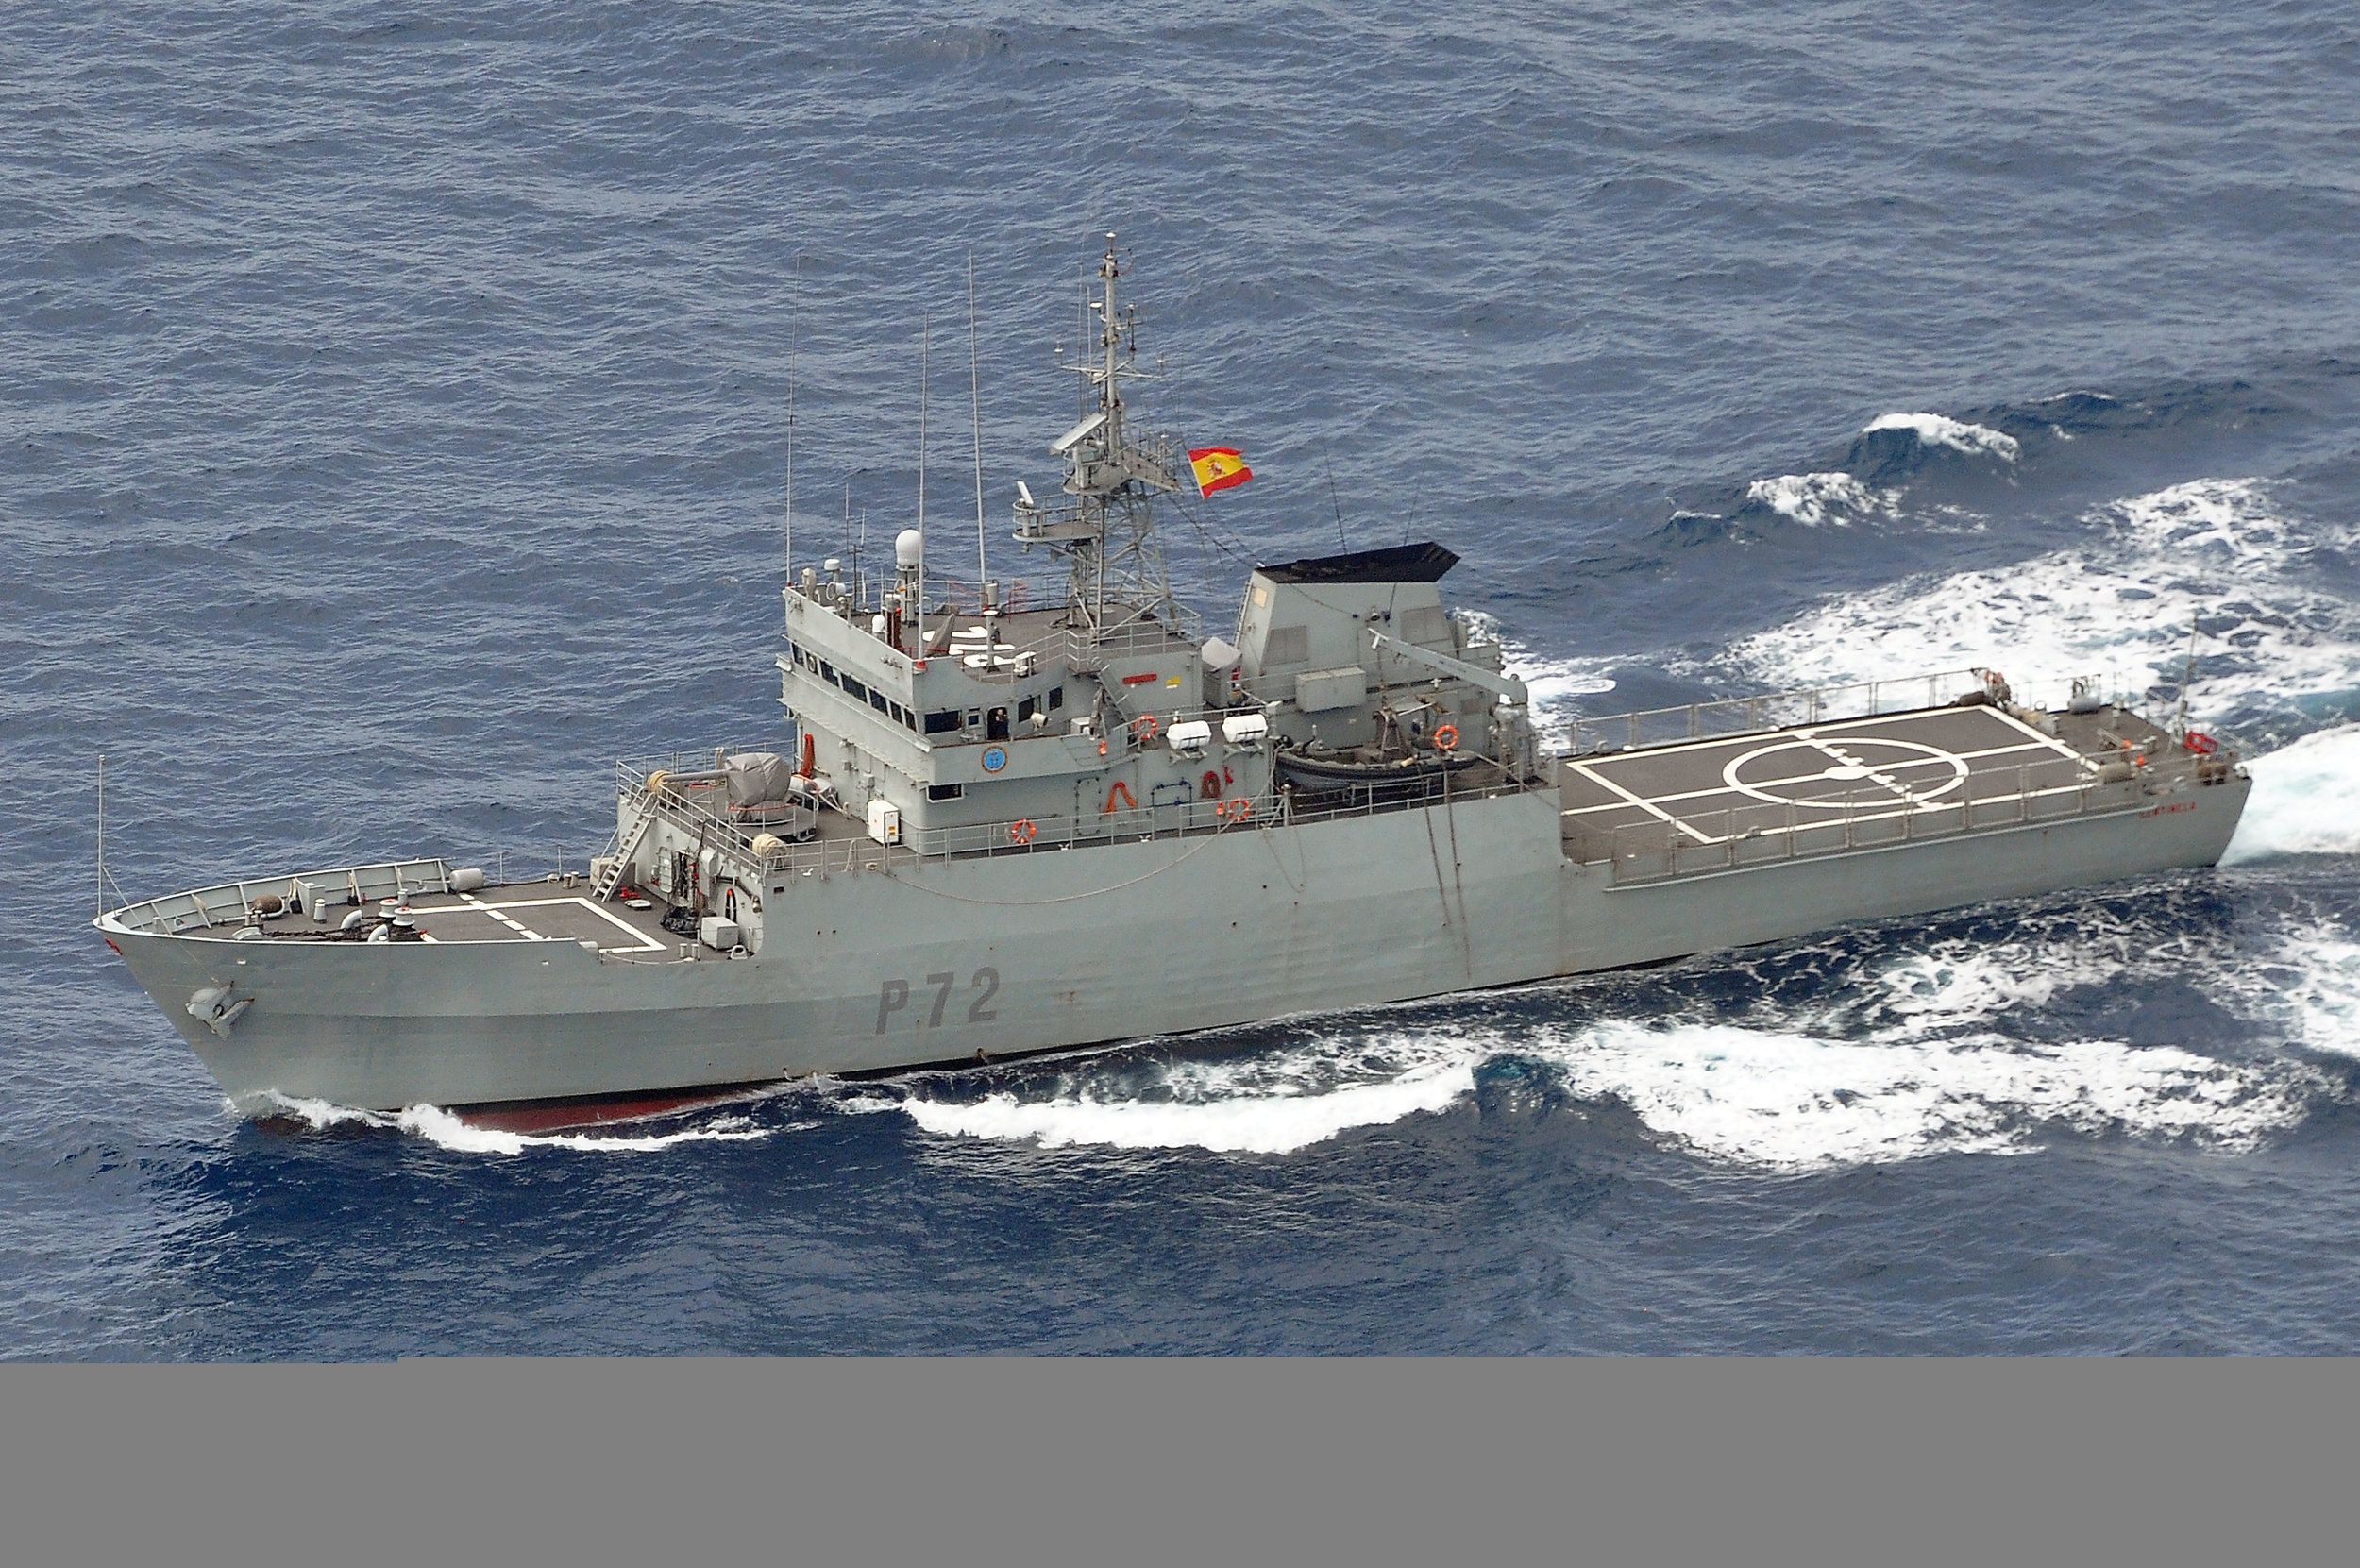 ESPS Centinela - photo courtesy Spanish Navy